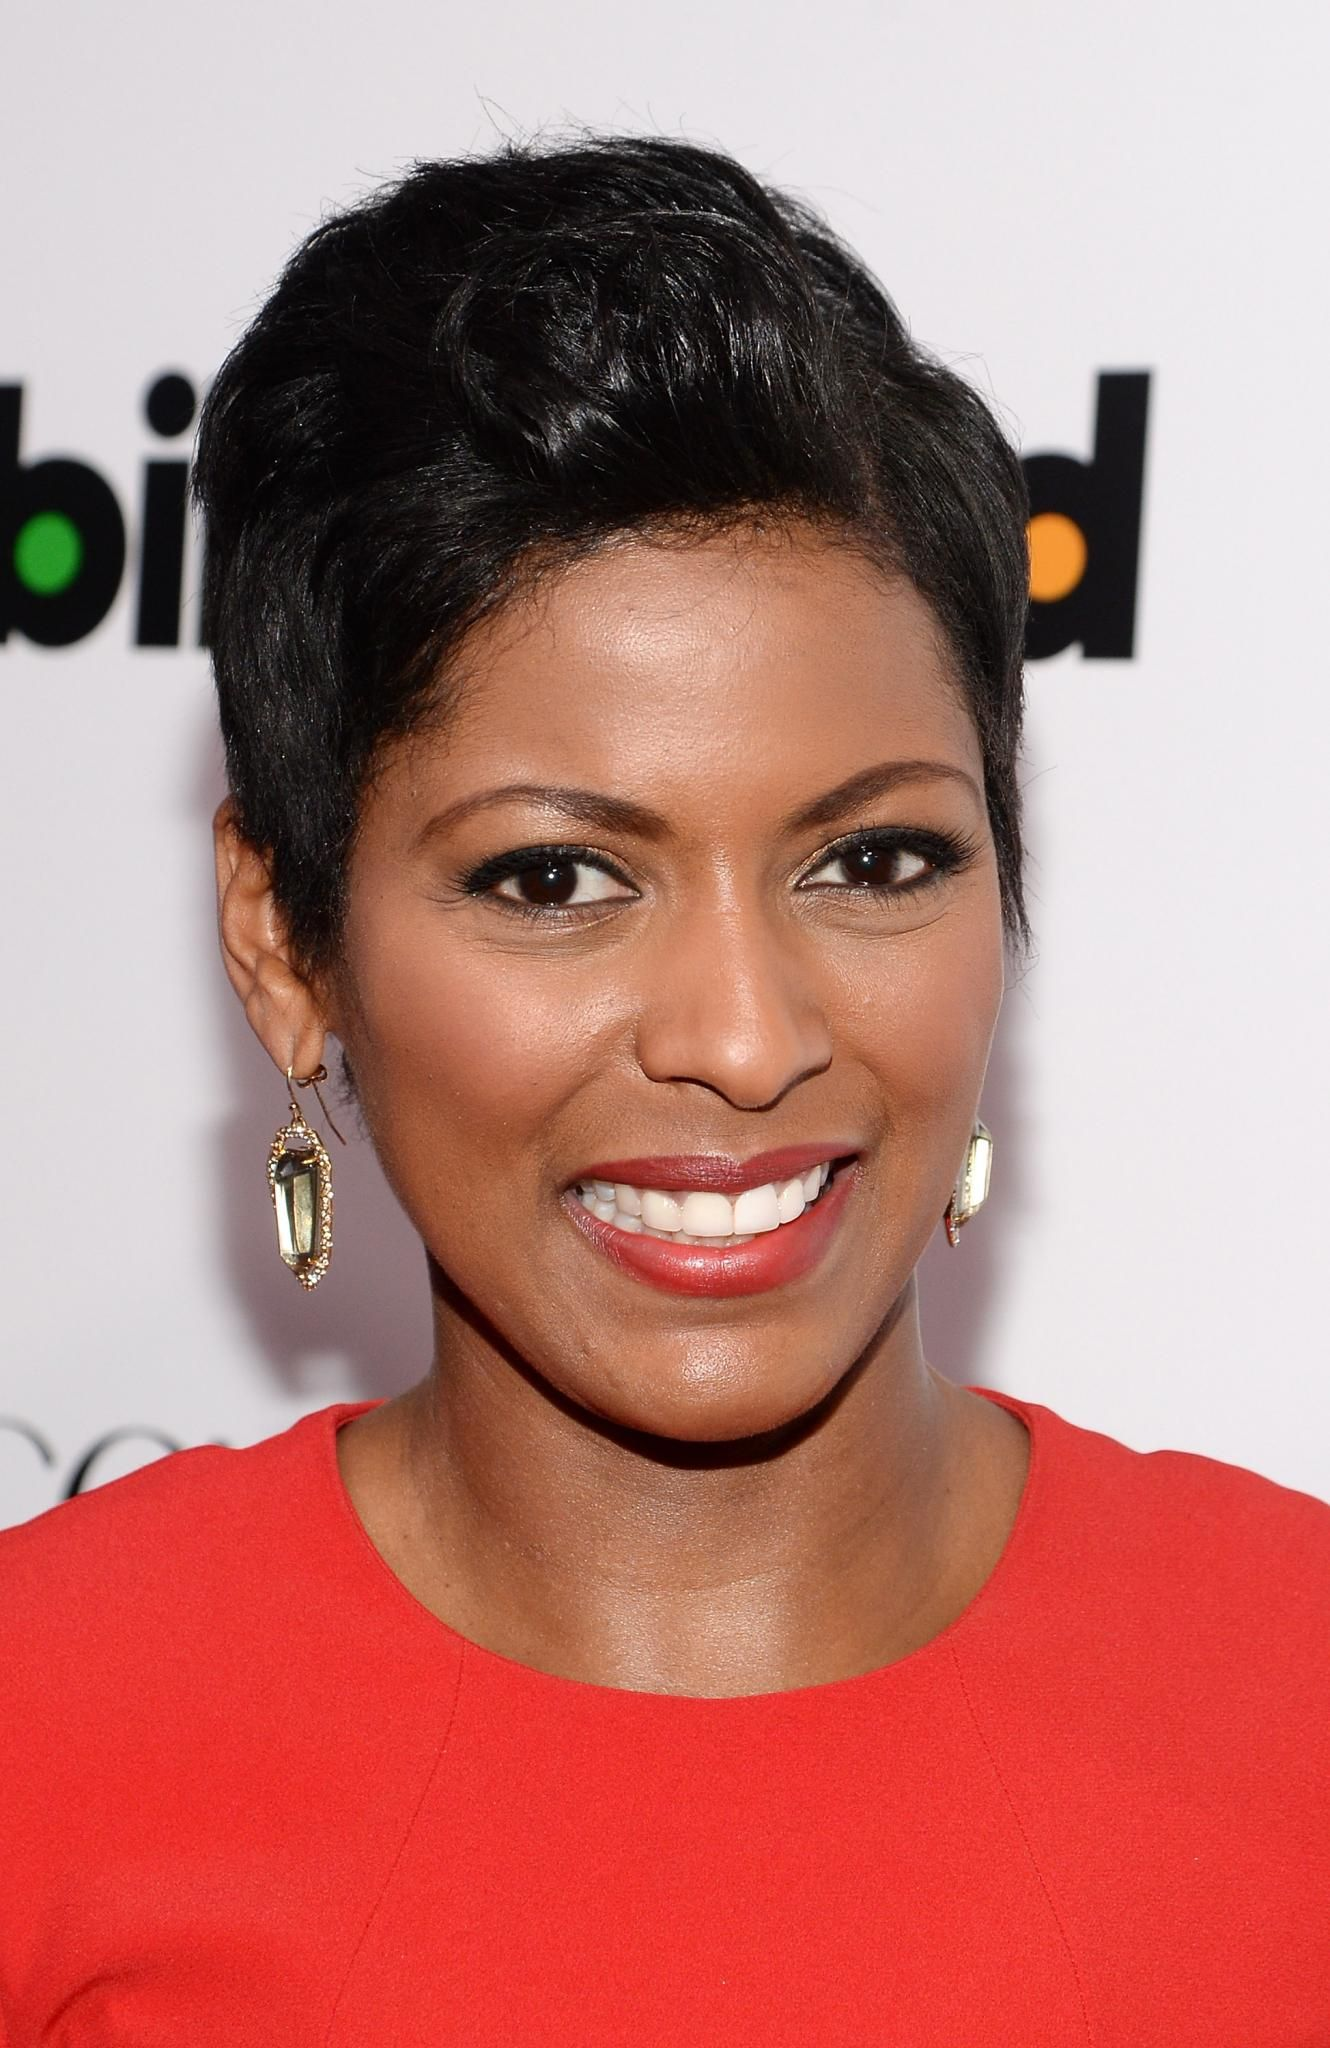 exclusive: tamron hall on being first black woman to co-anchor